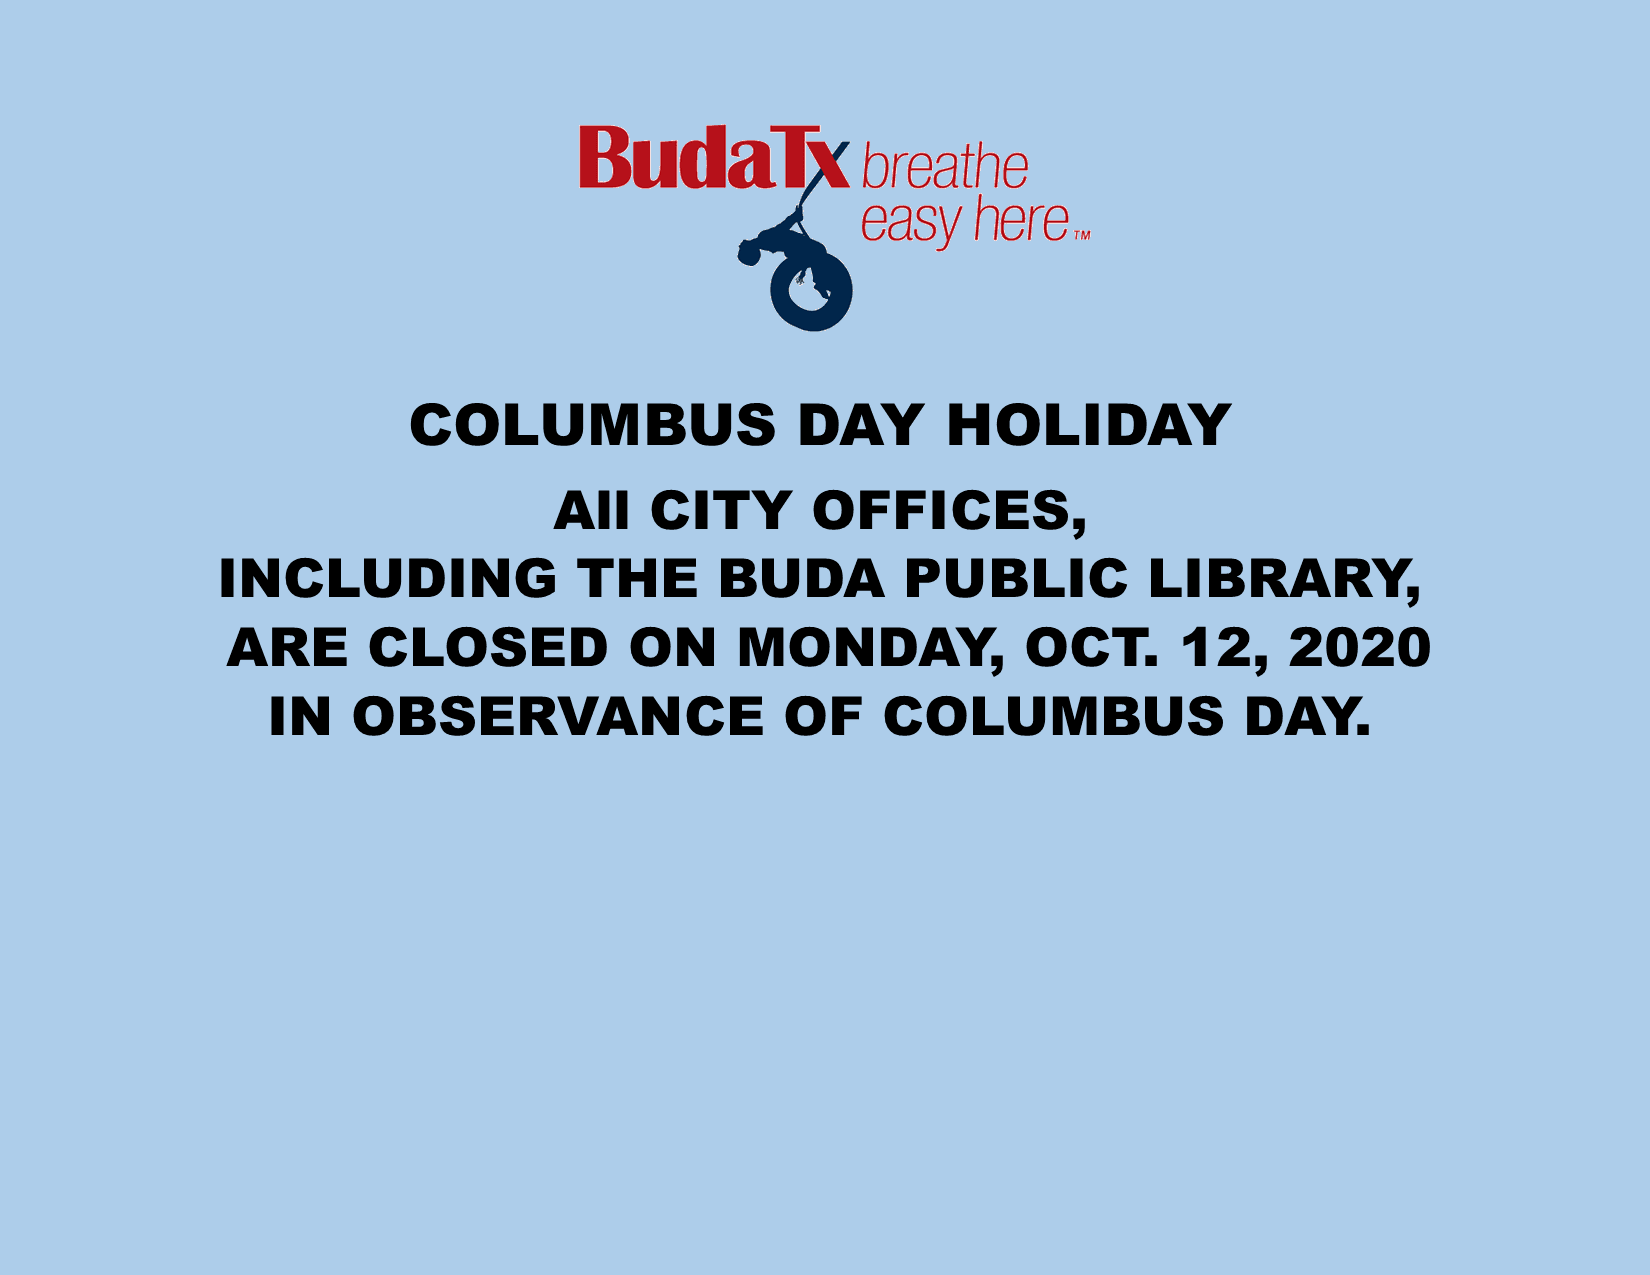 Columbus Day Holiday - Oct. 12, 2020